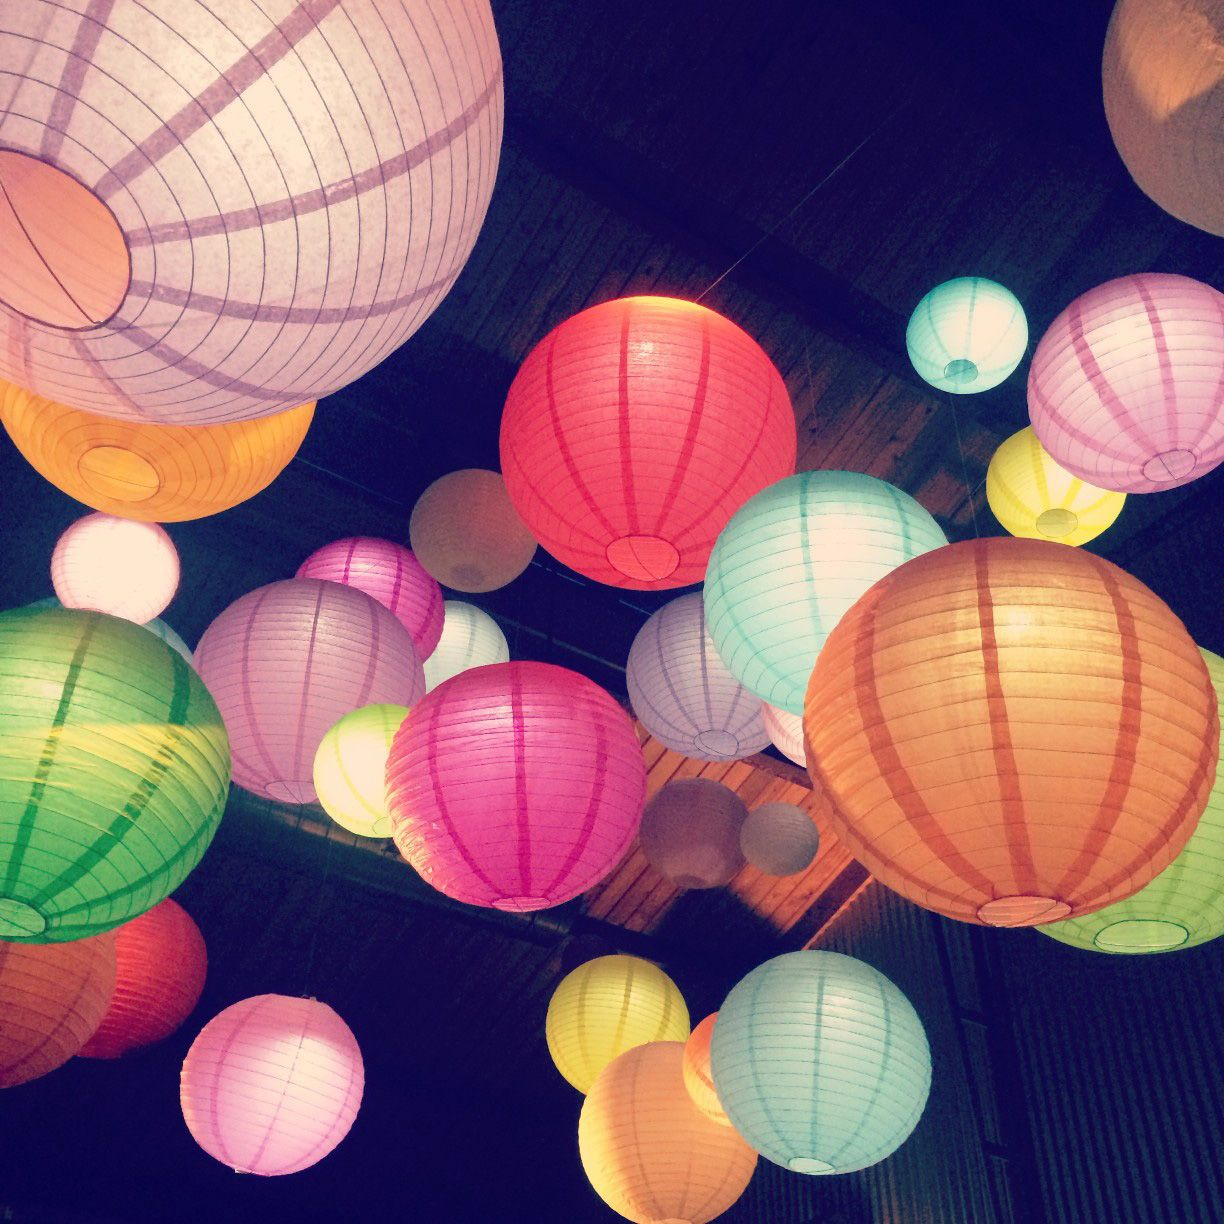 Multi Colored Paper Lanterns Hanging from Ceiling